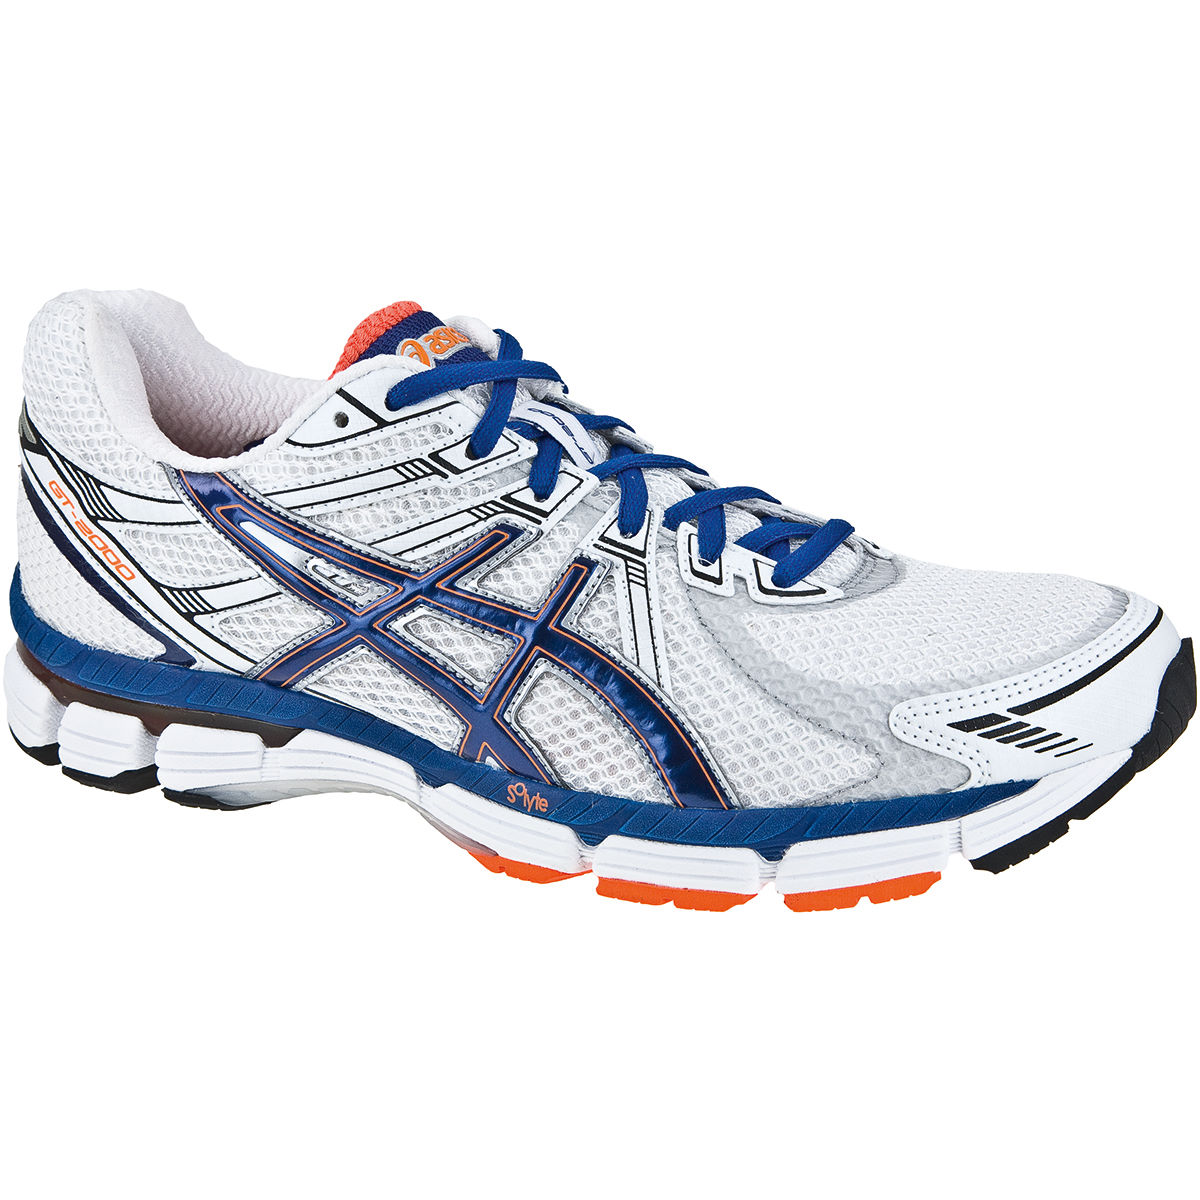 wiggle asics gt 2000 shoes aw13 stability running shoes. Black Bedroom Furniture Sets. Home Design Ideas